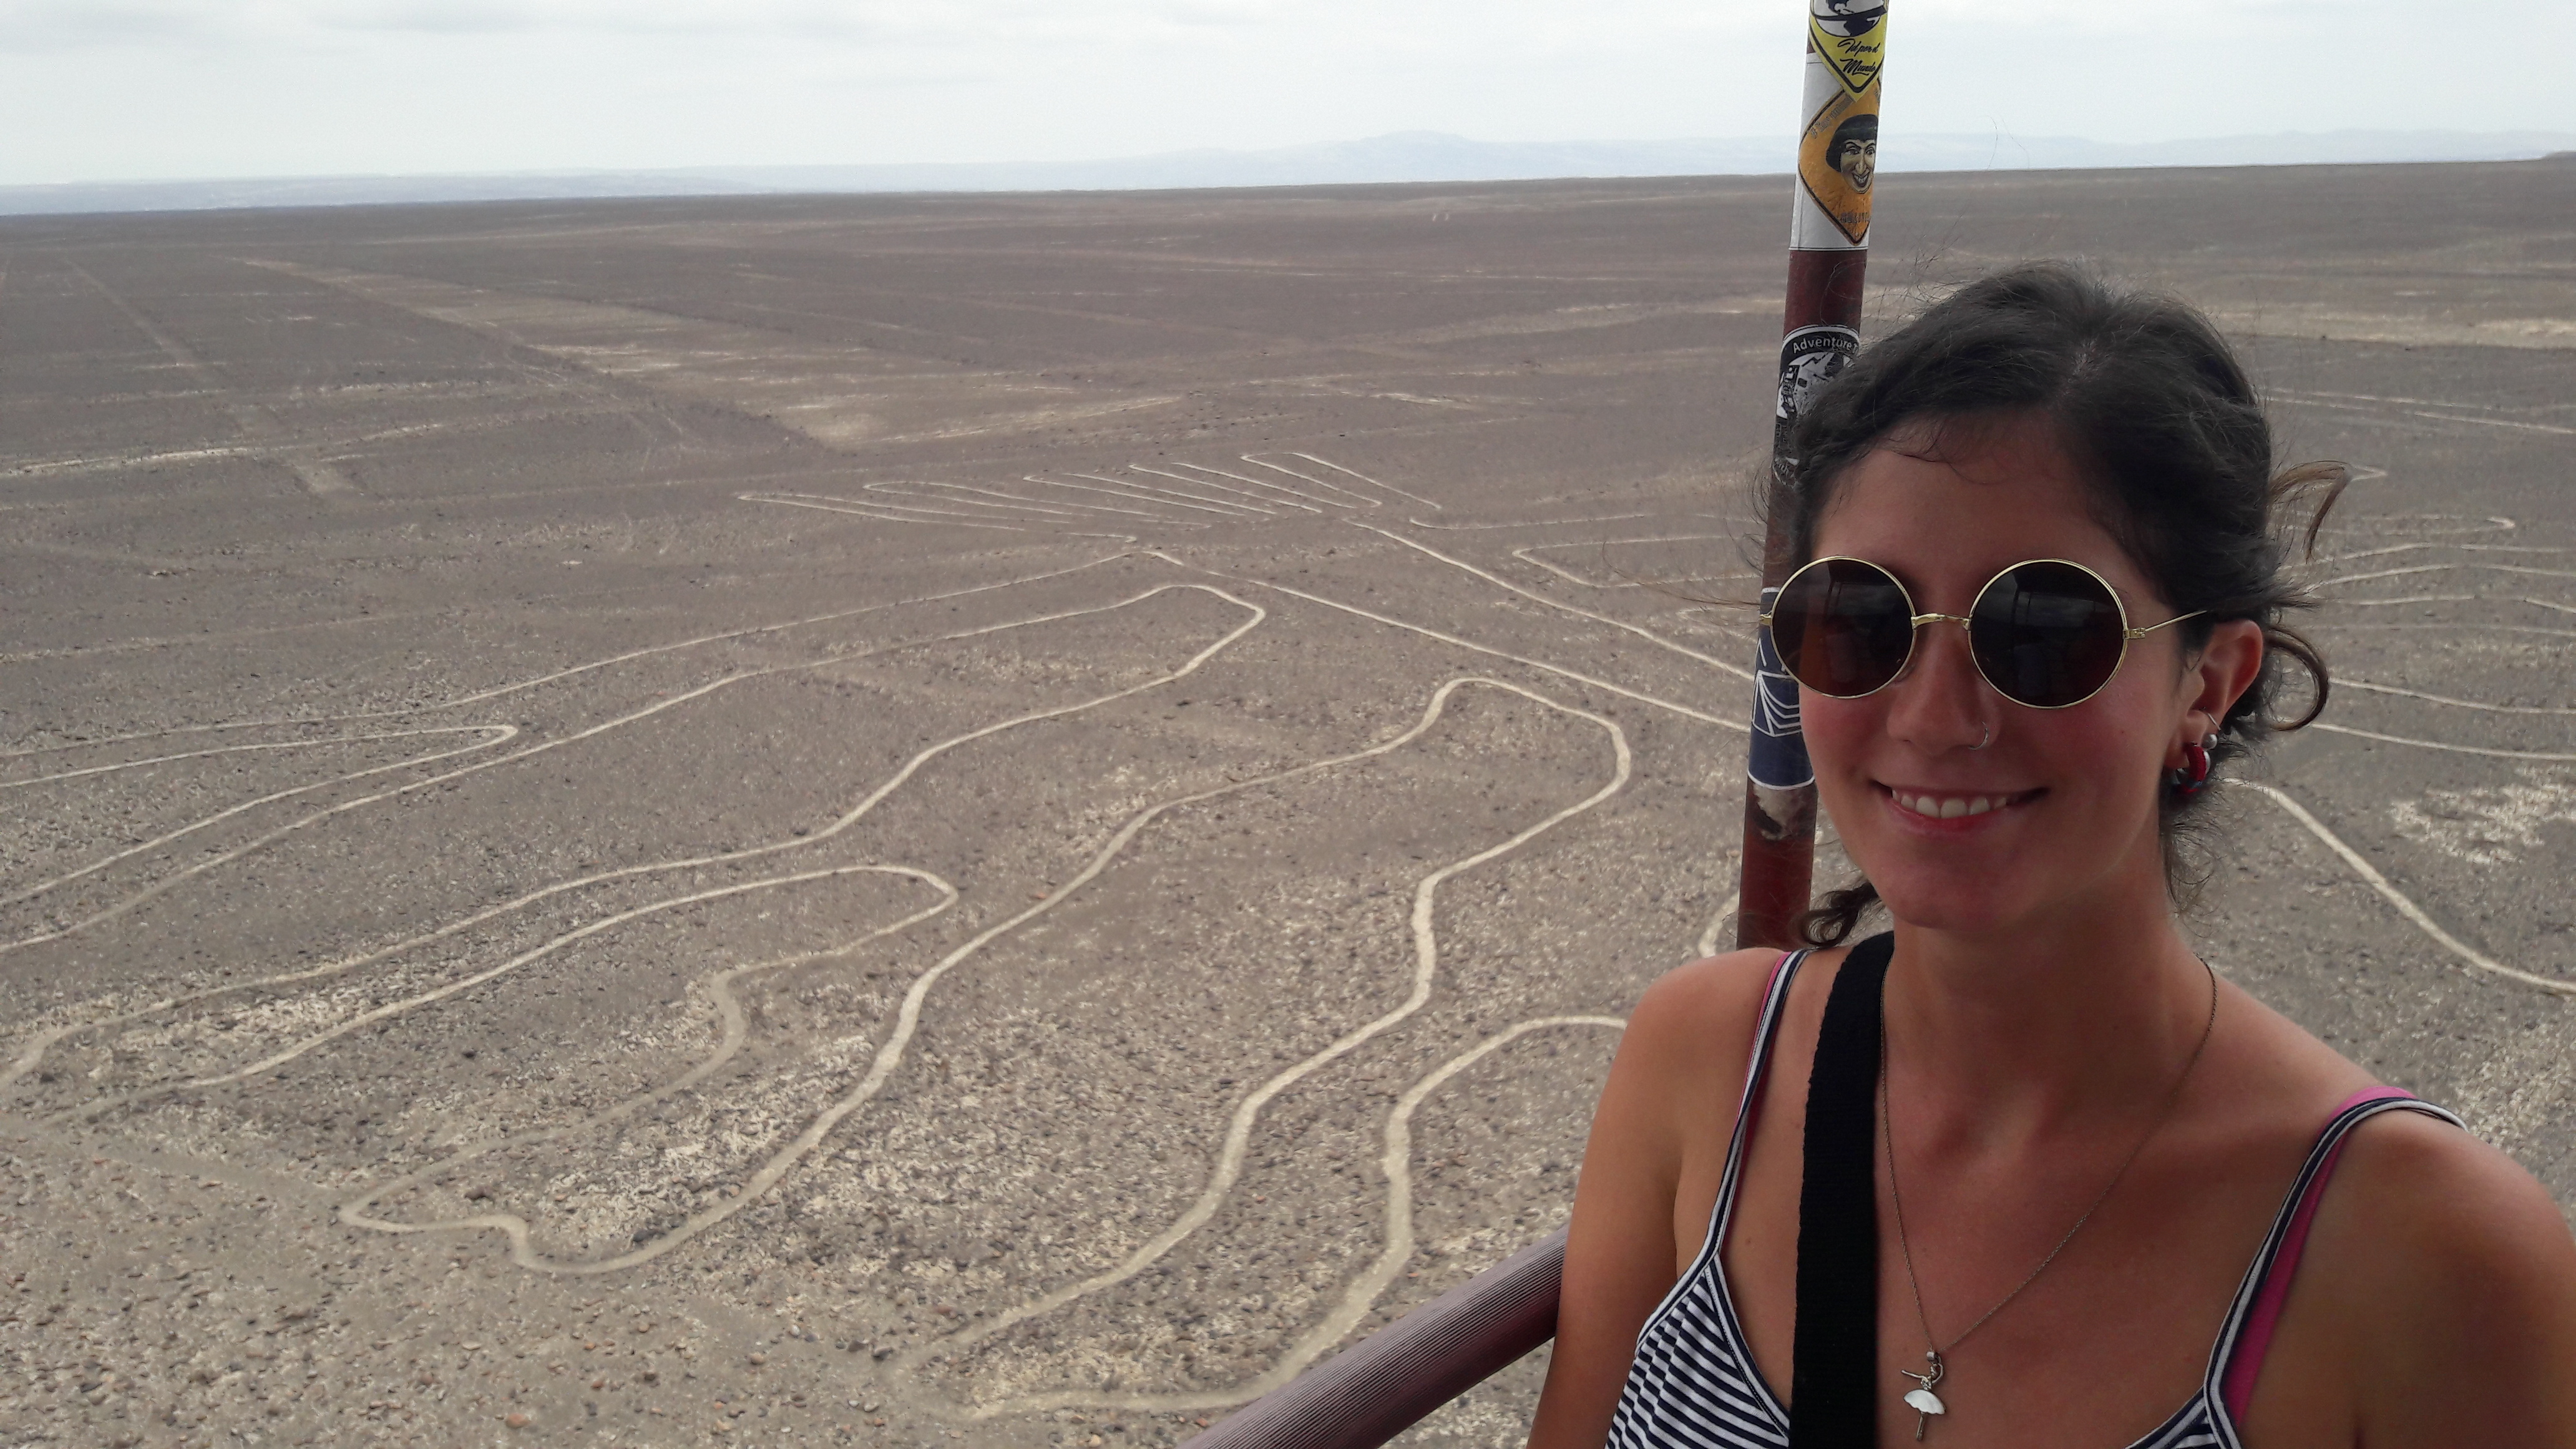 lines in the sand and a woman smiling with sunglasses